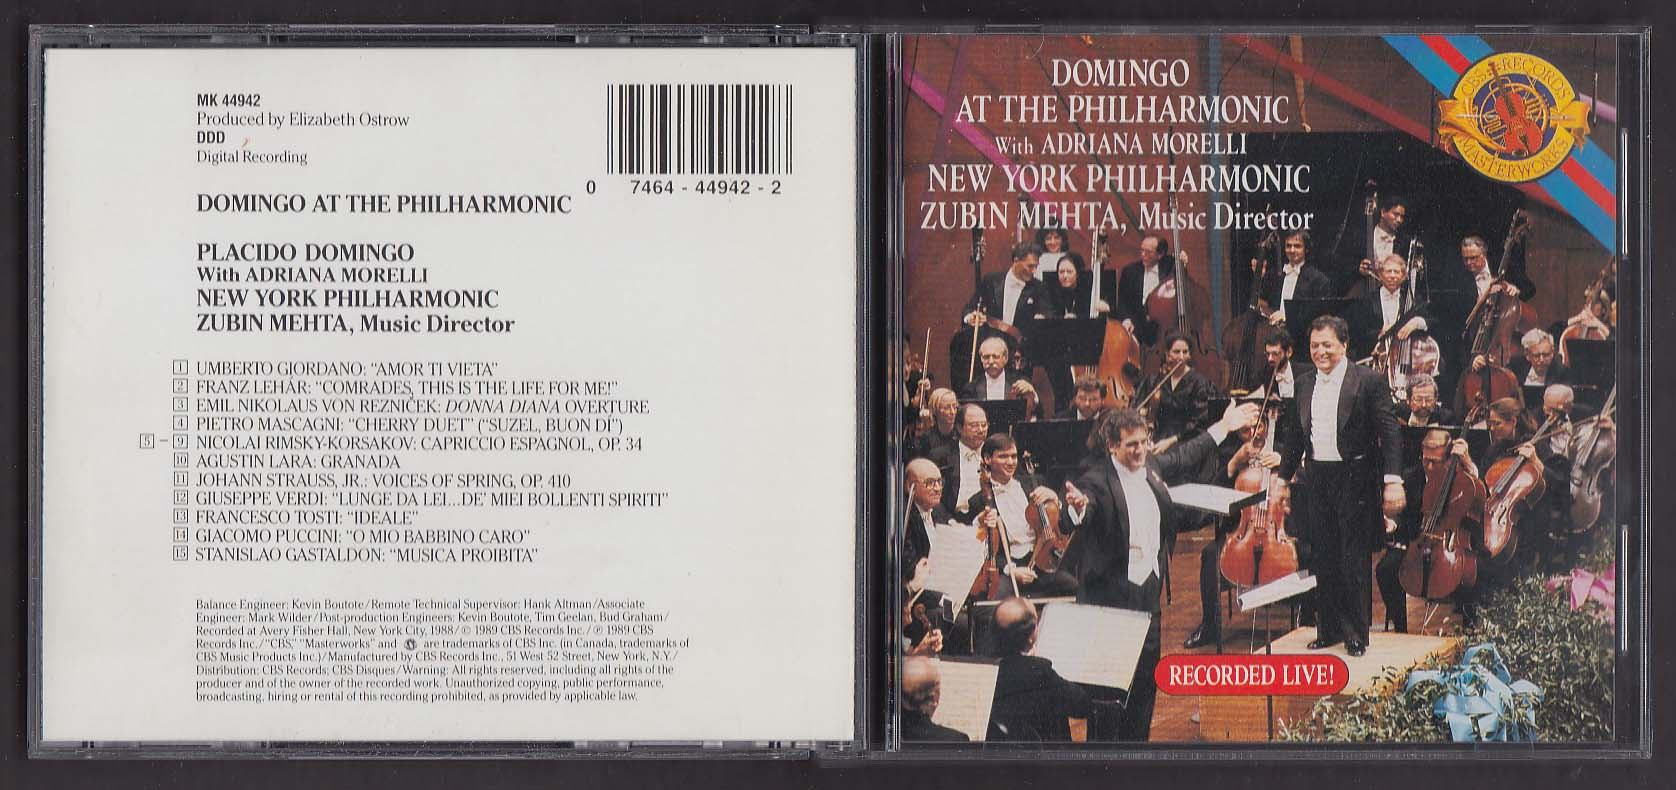 Image for Placido Domingo at the Philharmonic - Zubin Mehta MK 44942 CBS CD 1989